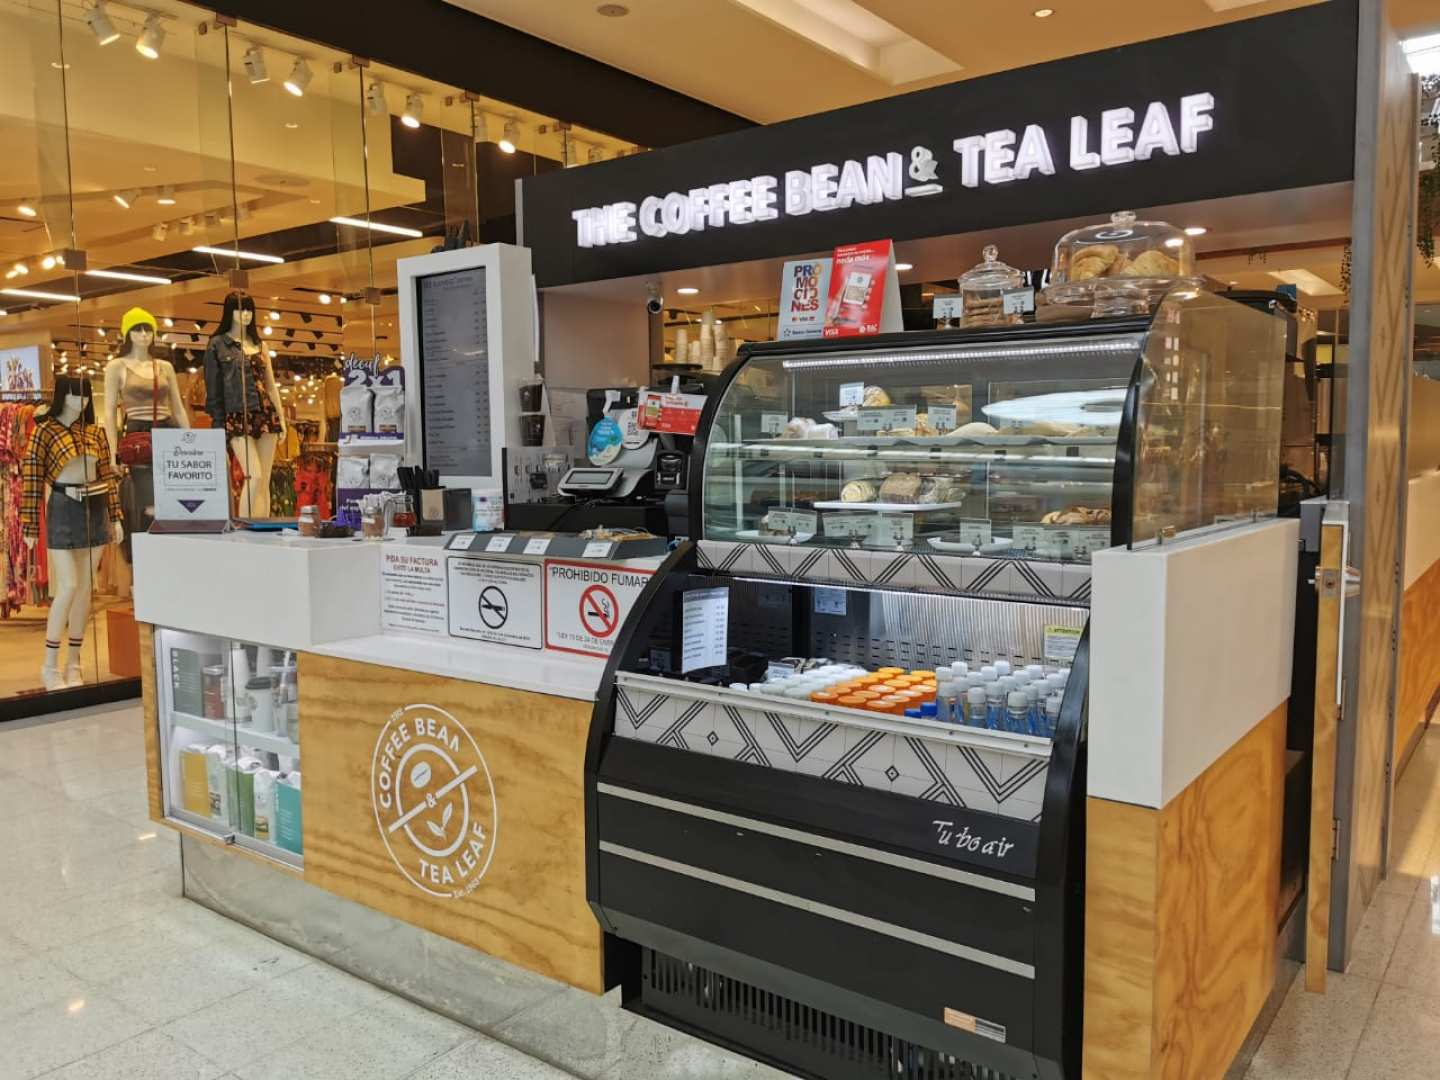 The Coffee Bean & Tea Leaf (Altaplaza)